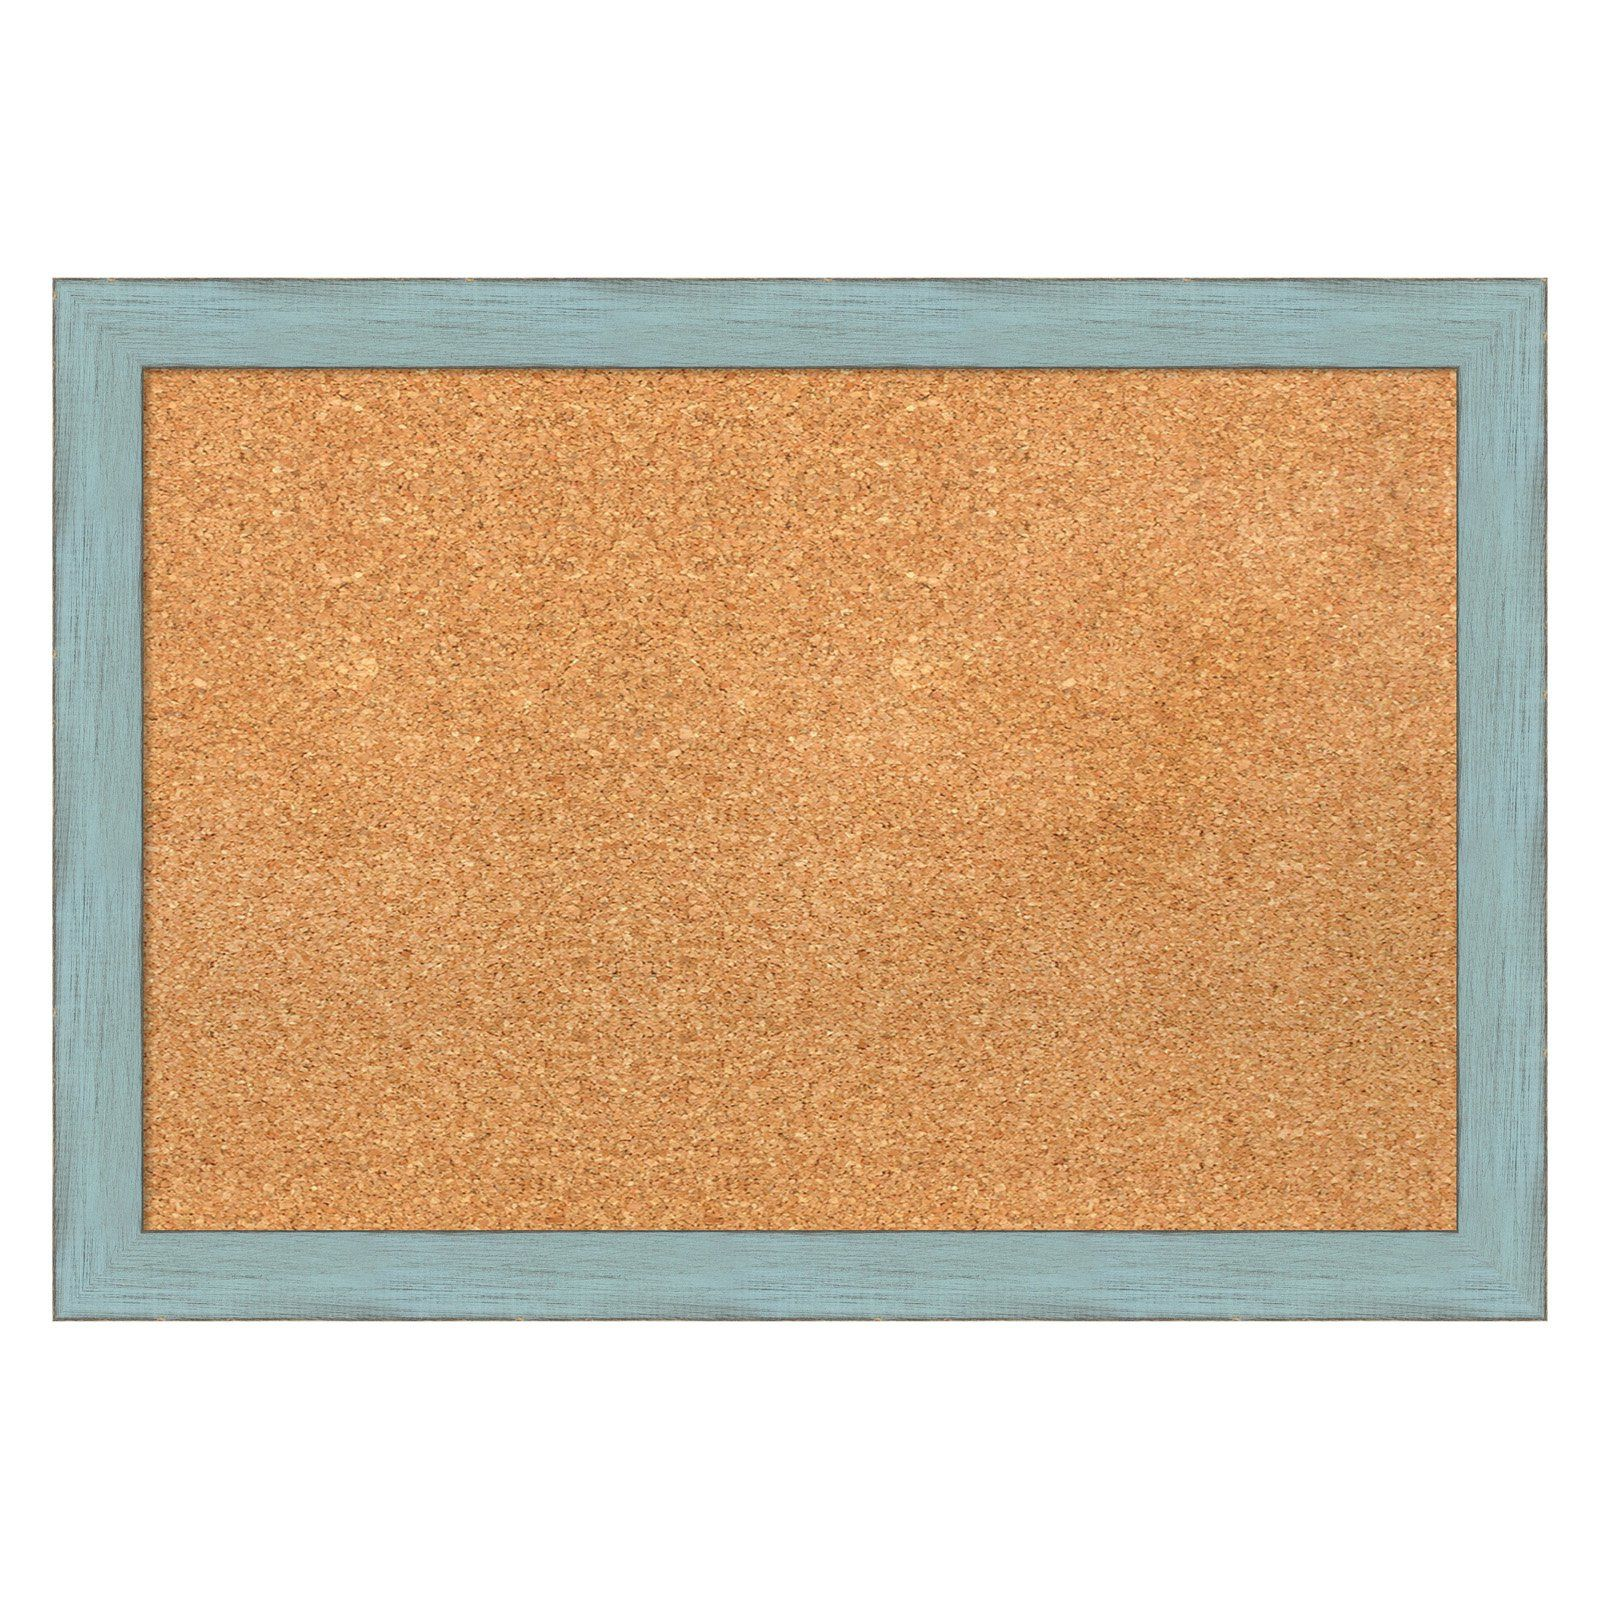 Amanti Art Sky Blue Rustic Framed Cork Board  Dsw1418340